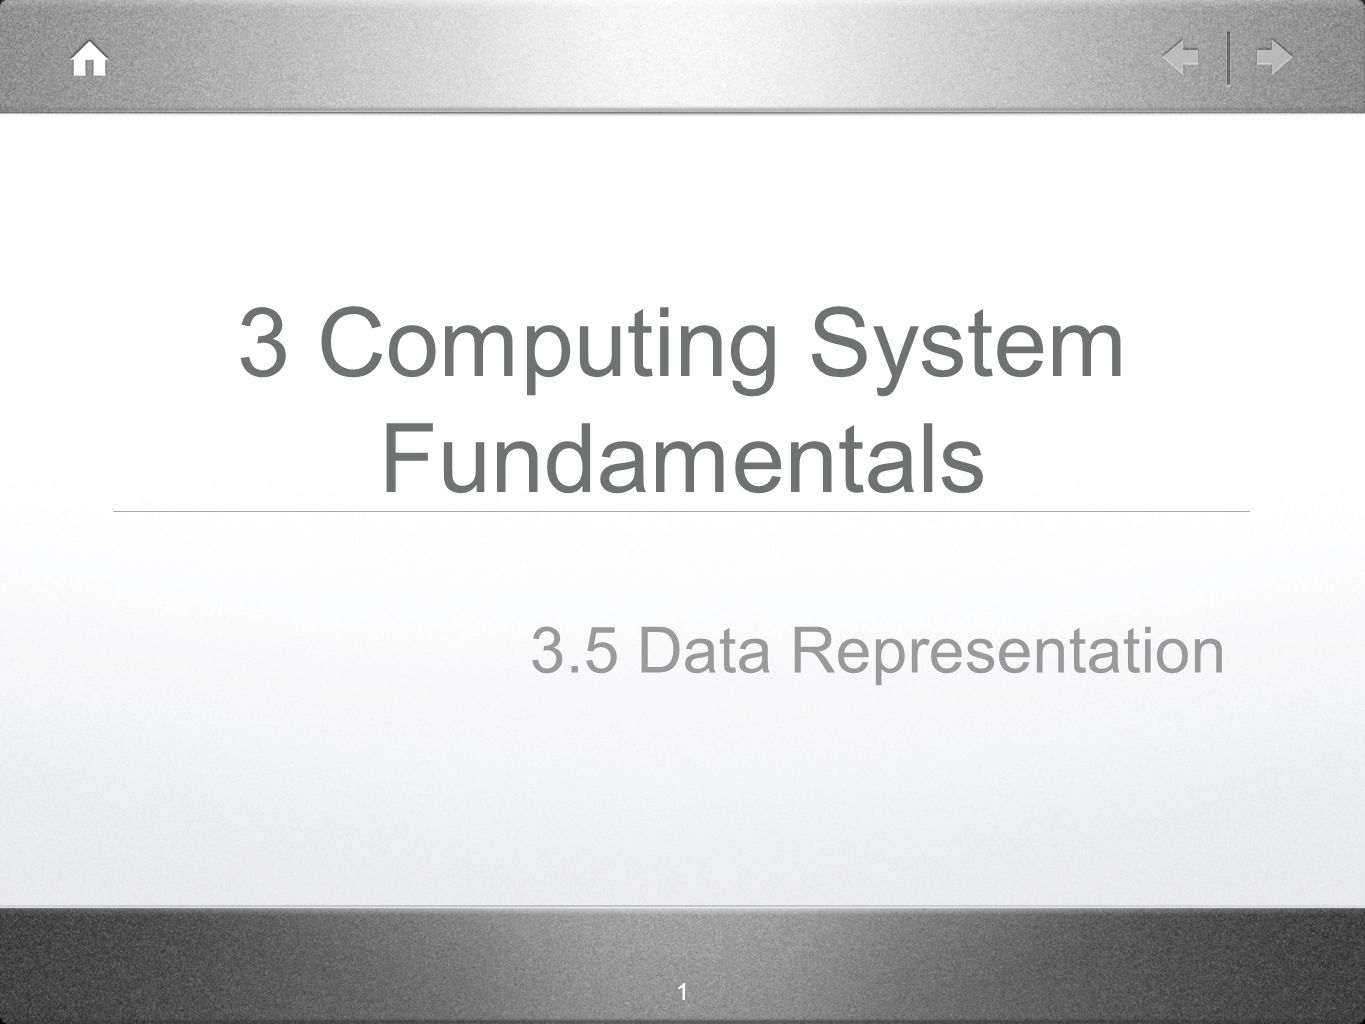 1 3 Computing System Fundamentals 3.5 Data Representation